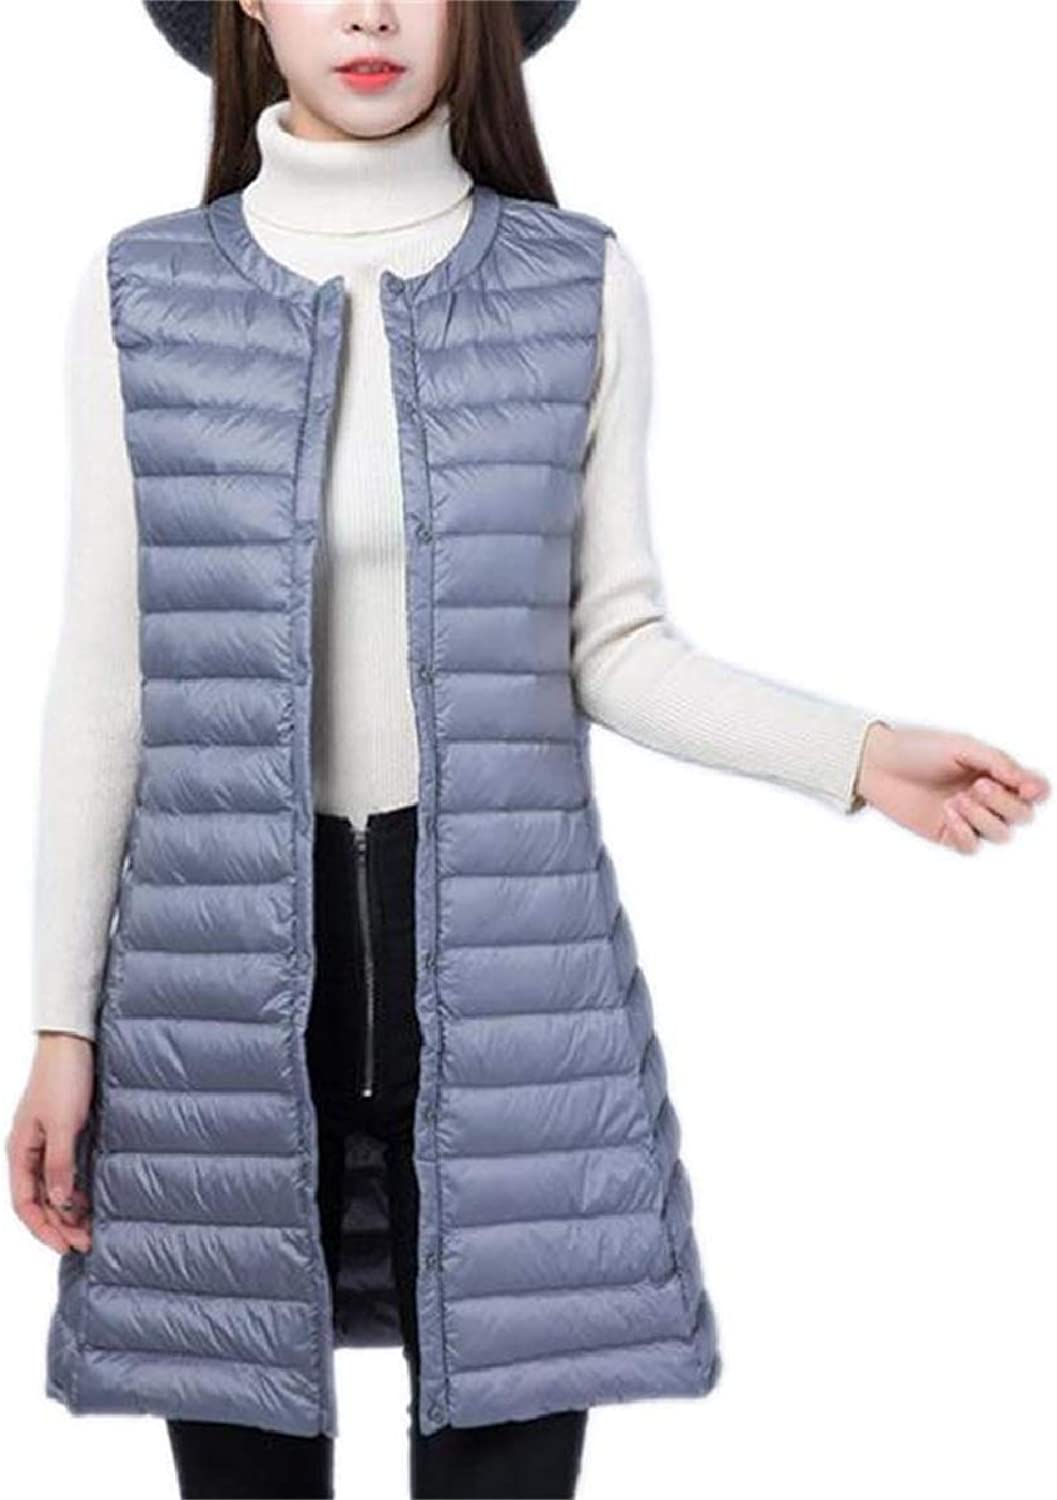 Xswsy XGCA Women Down Jacket Down Vest Lightweight Puffer Mid Long Trench Coat Vest